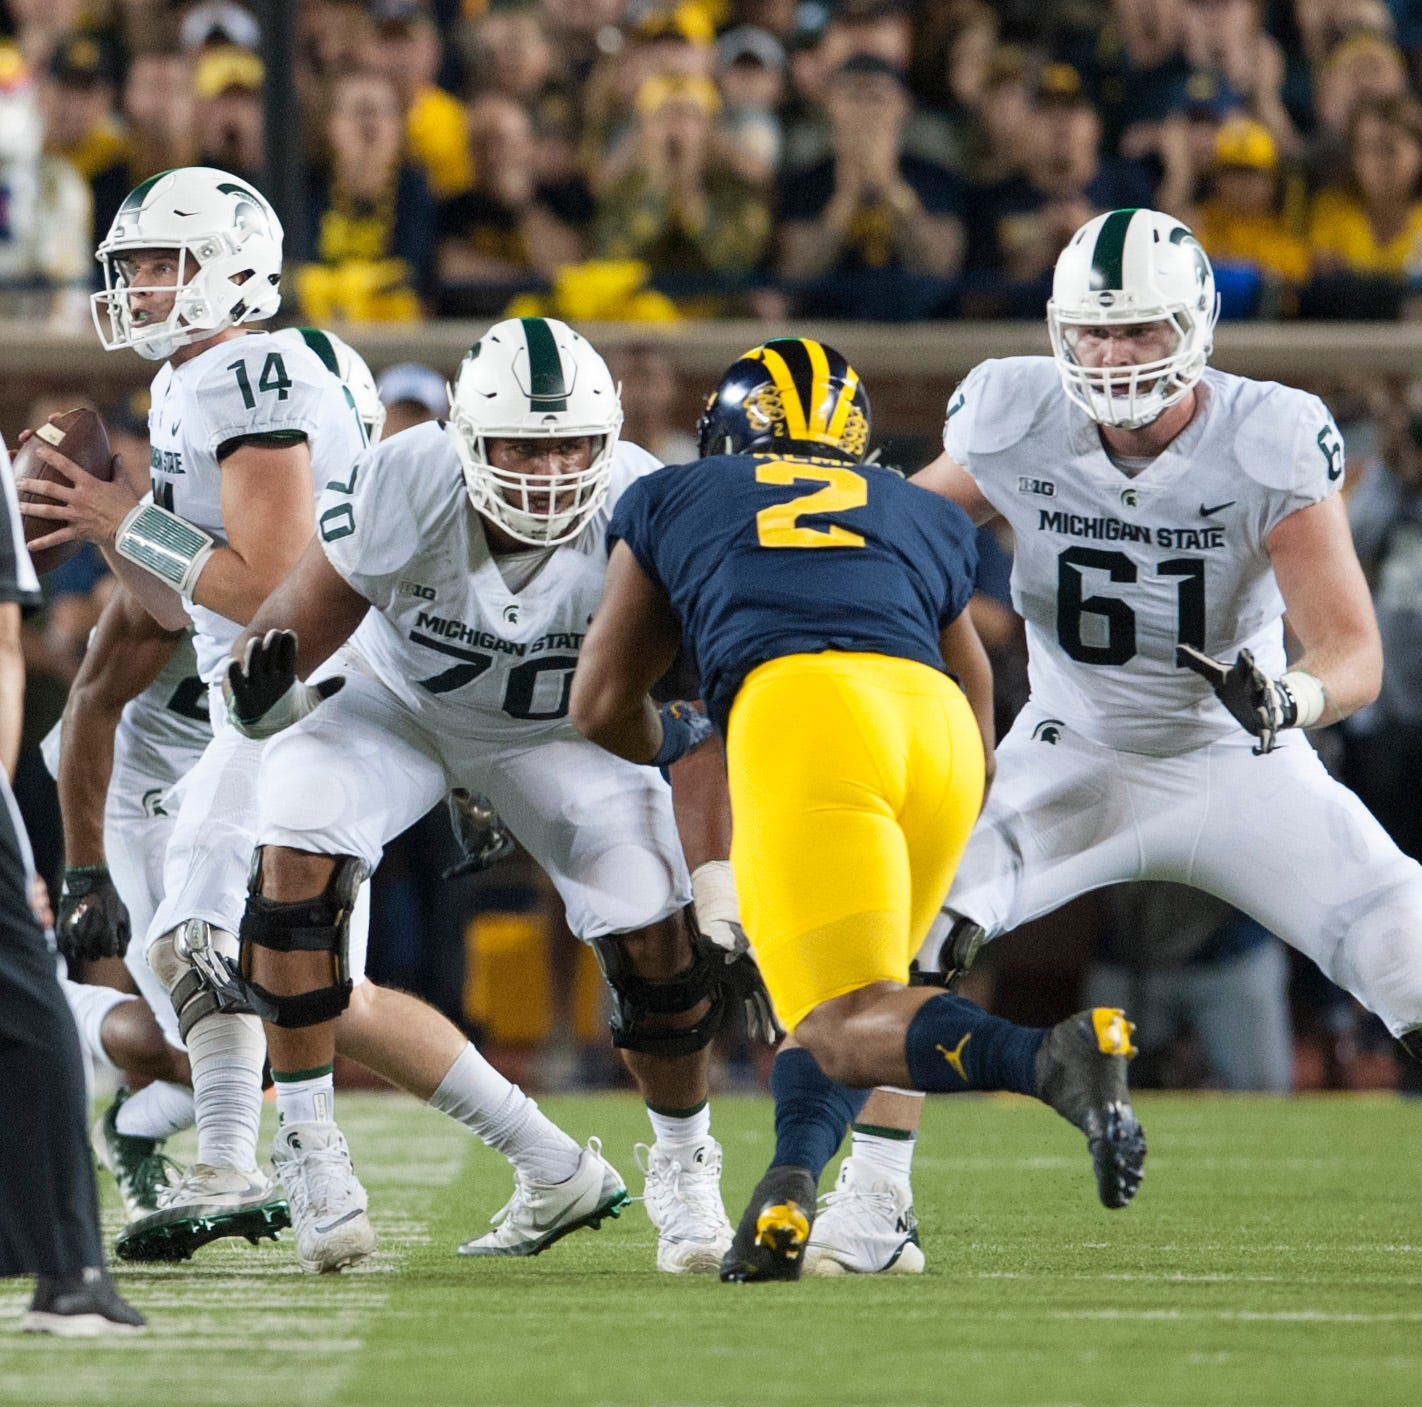 Niyo: Michigan State's O-line center of preseason focus